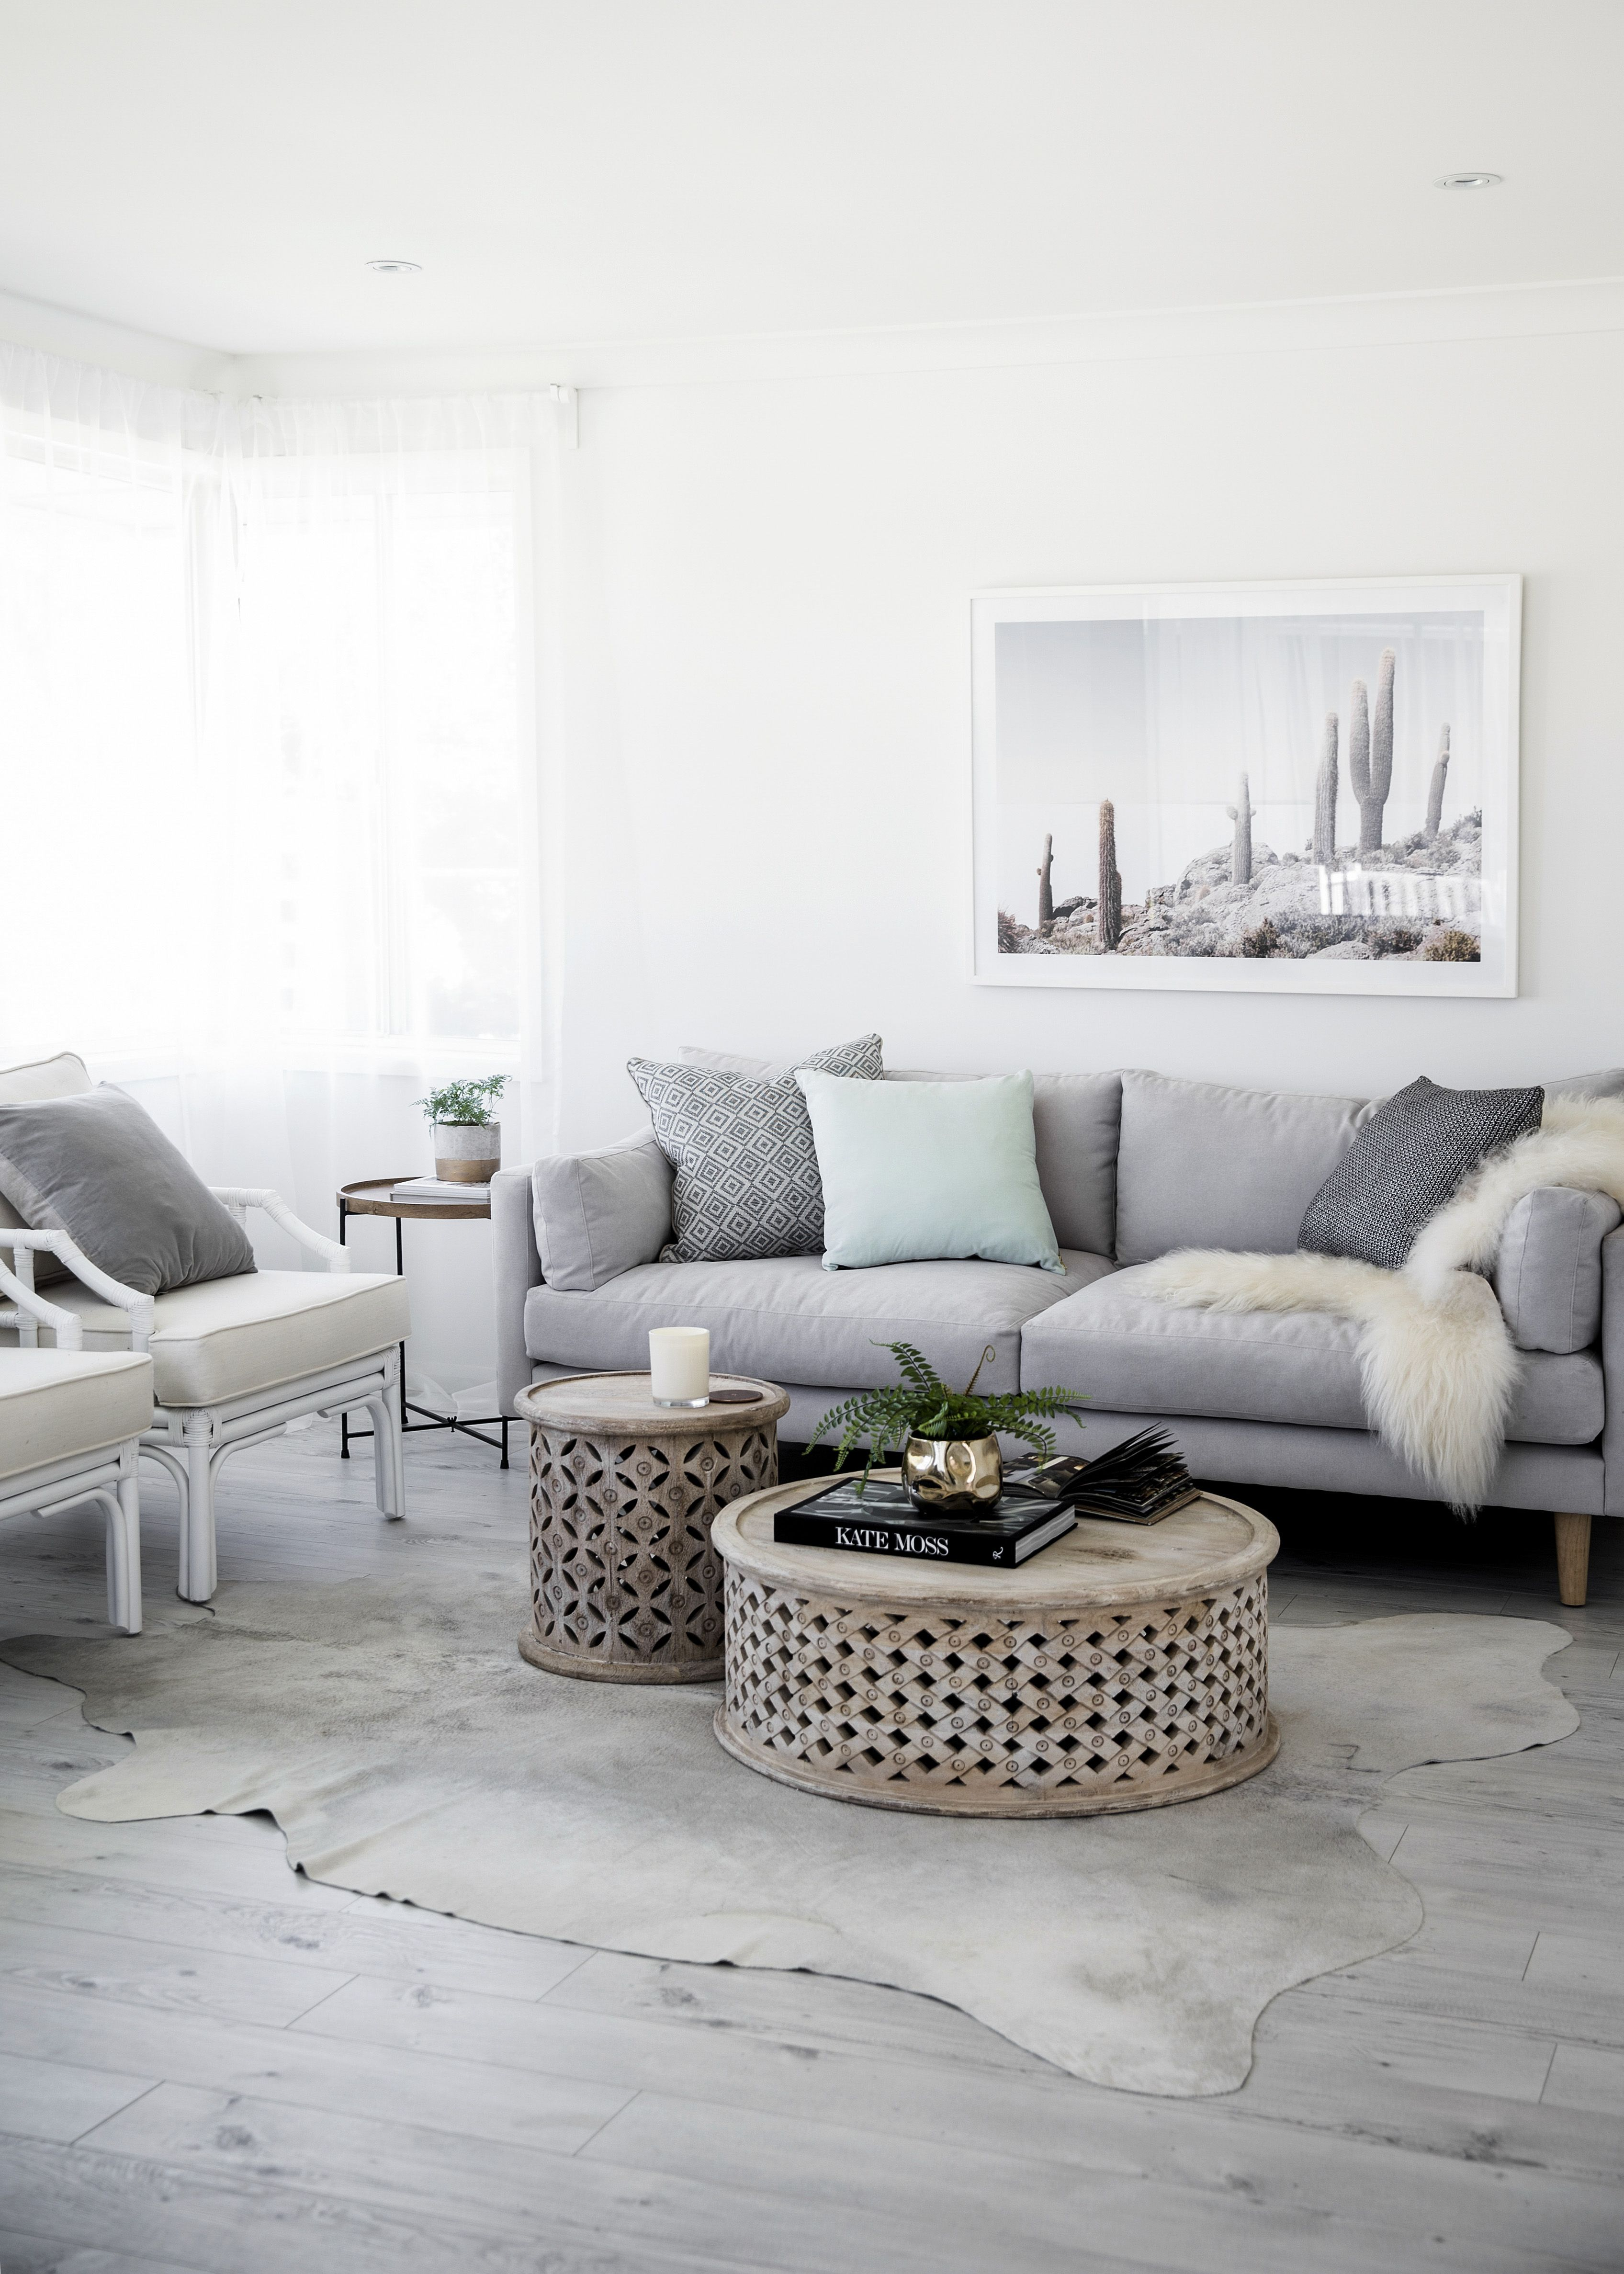 Best Interior Design For Living Room 2017 Sofa Ideas Images 160 Coffee Tables Furniture Breathtaking Https Decoratio Co